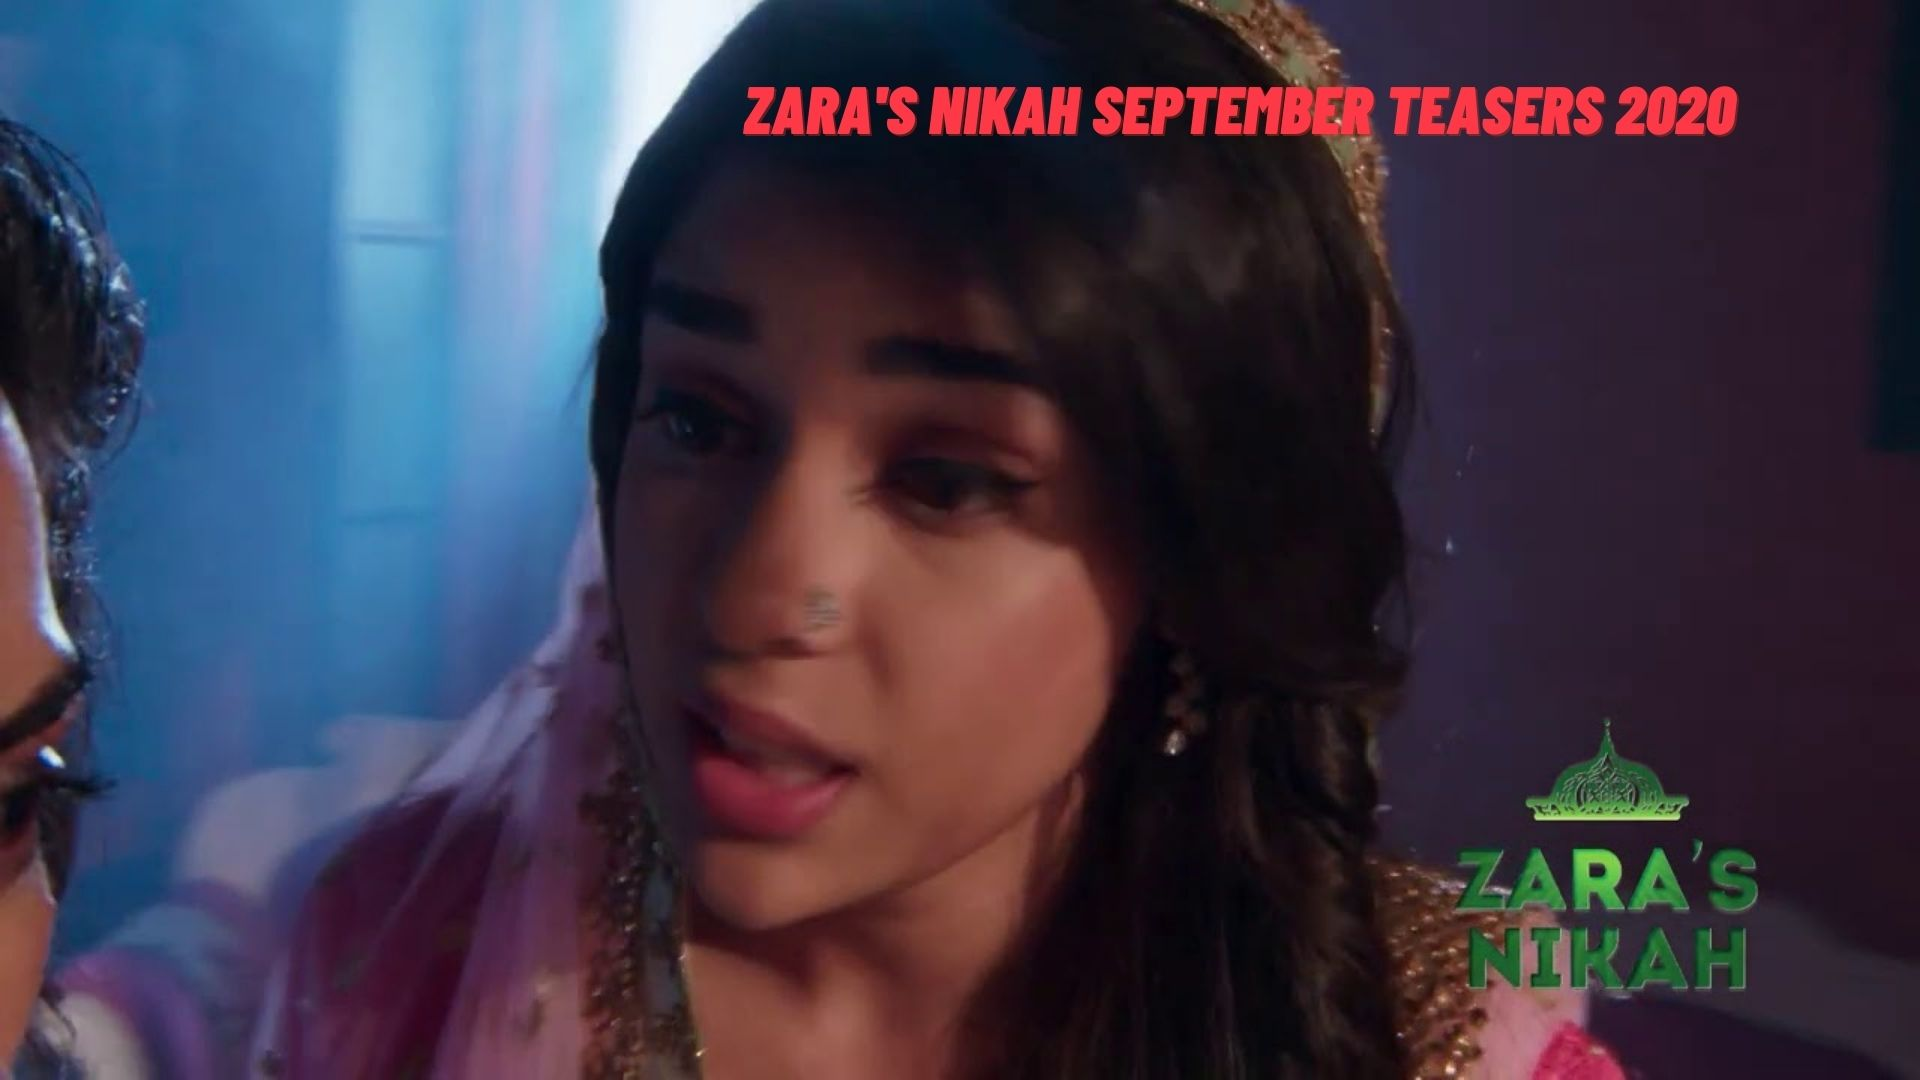 Zara's Nikah September Teasers 2020